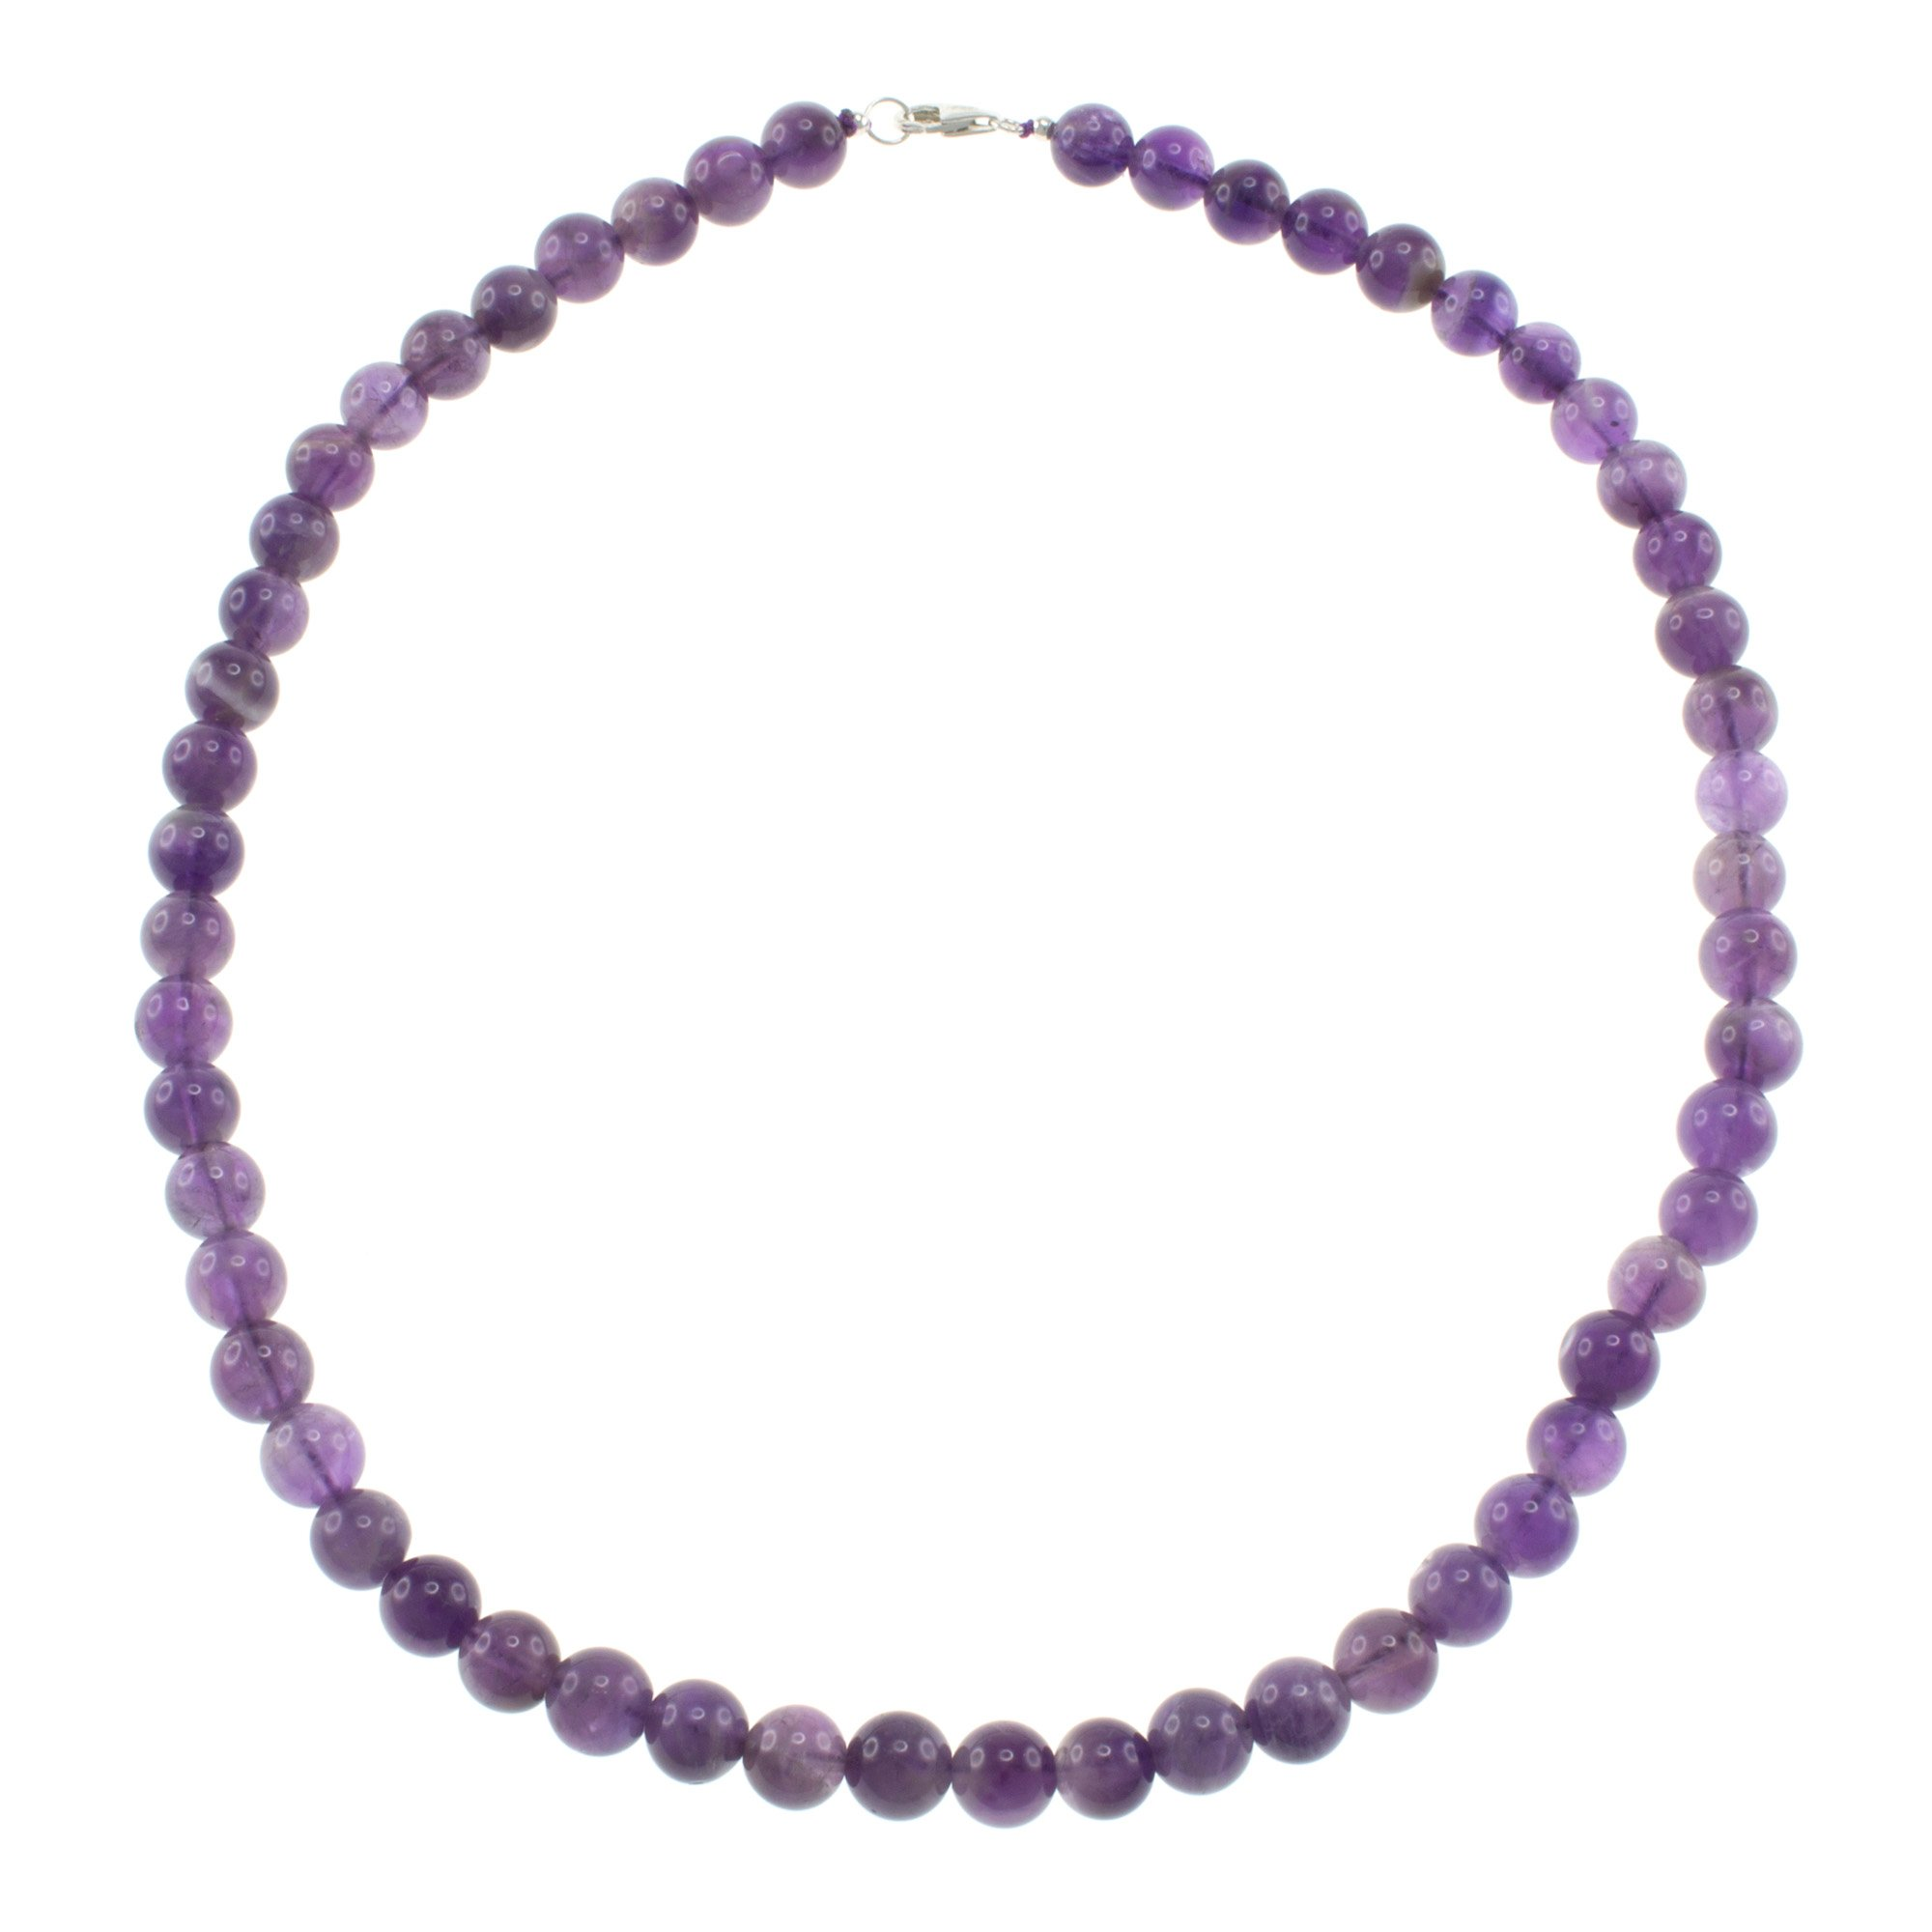 Pearlz Ocean Amethyst Round Beads Strand Necklace with Sterling Silver Clasp Jewelry for Women